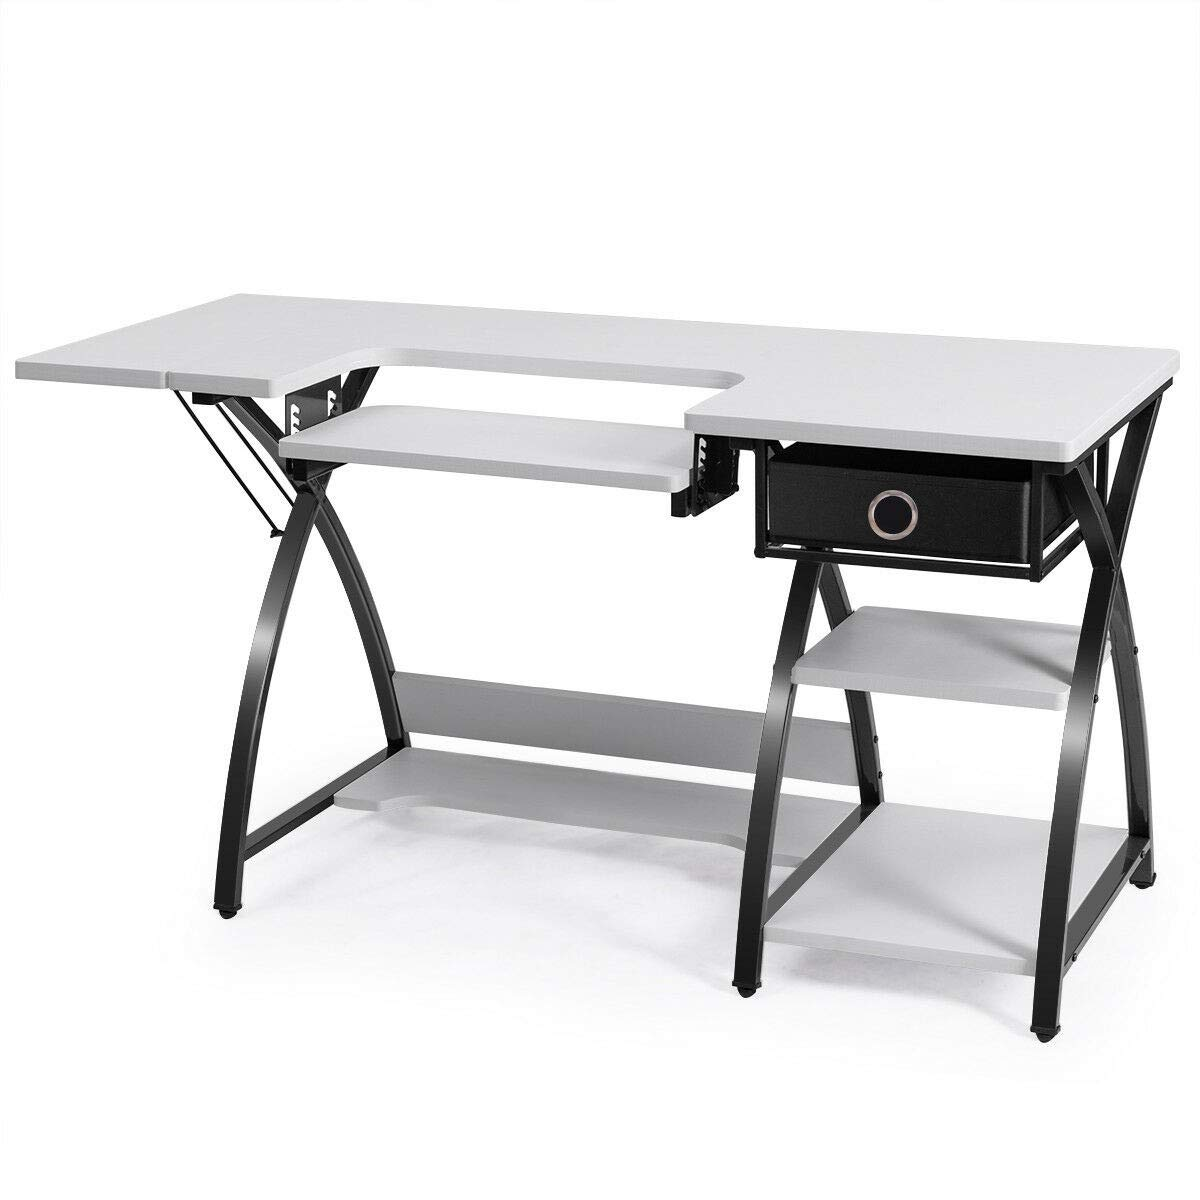 LHONE Multipurpose Sewing Desk Craft Sewing Table Folding Armoire Storage Computer Desk with Drawer & Shleves